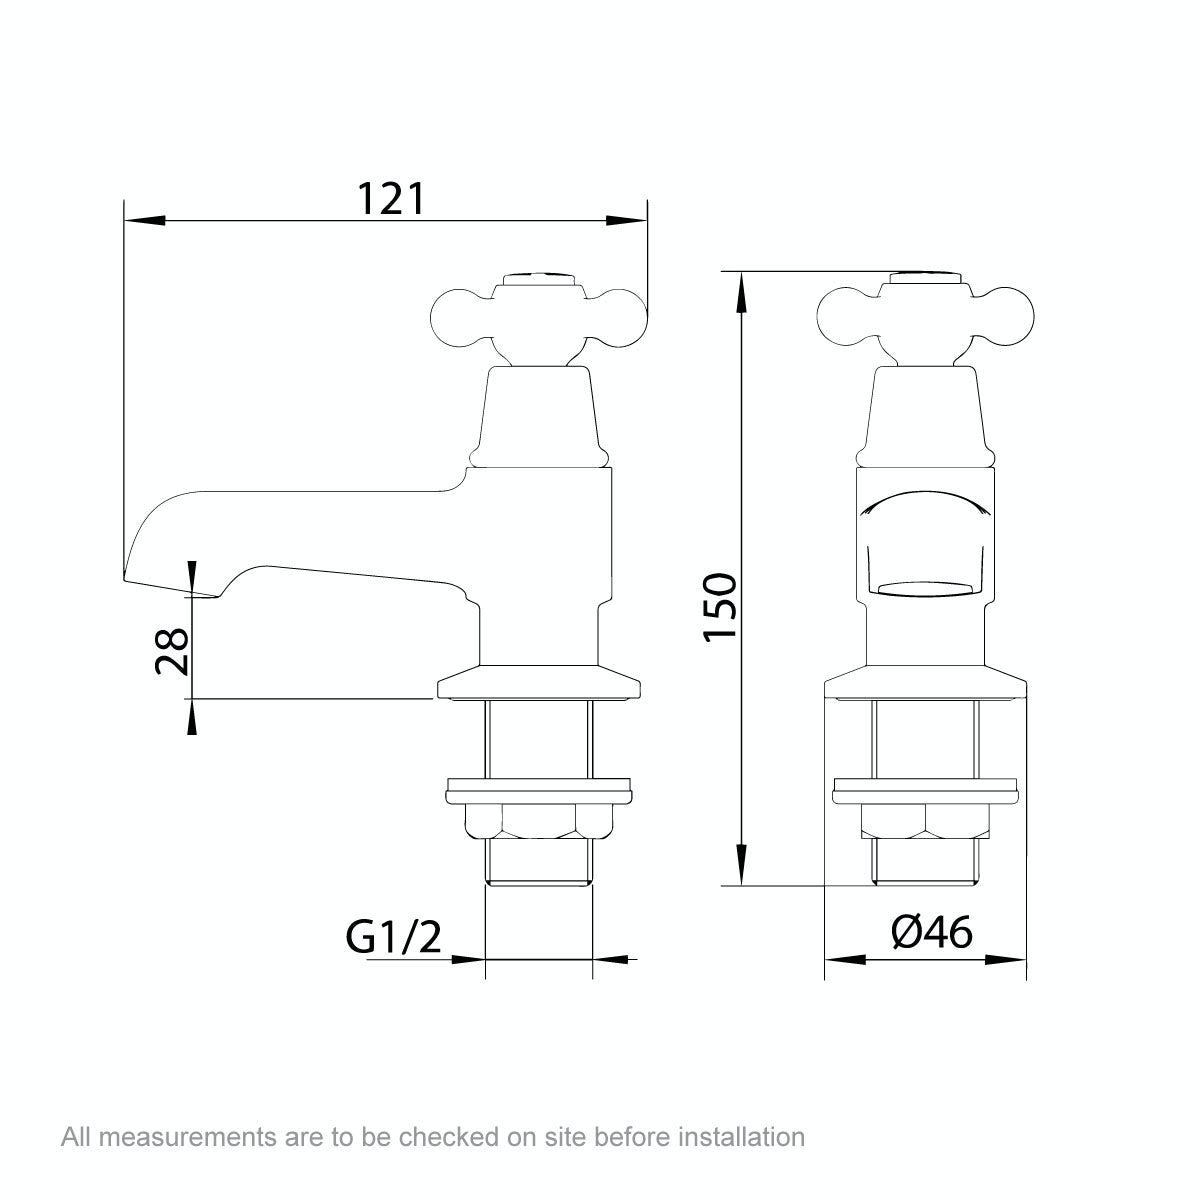 Dimensions for The Bath Co. Camberley basin pillar taps